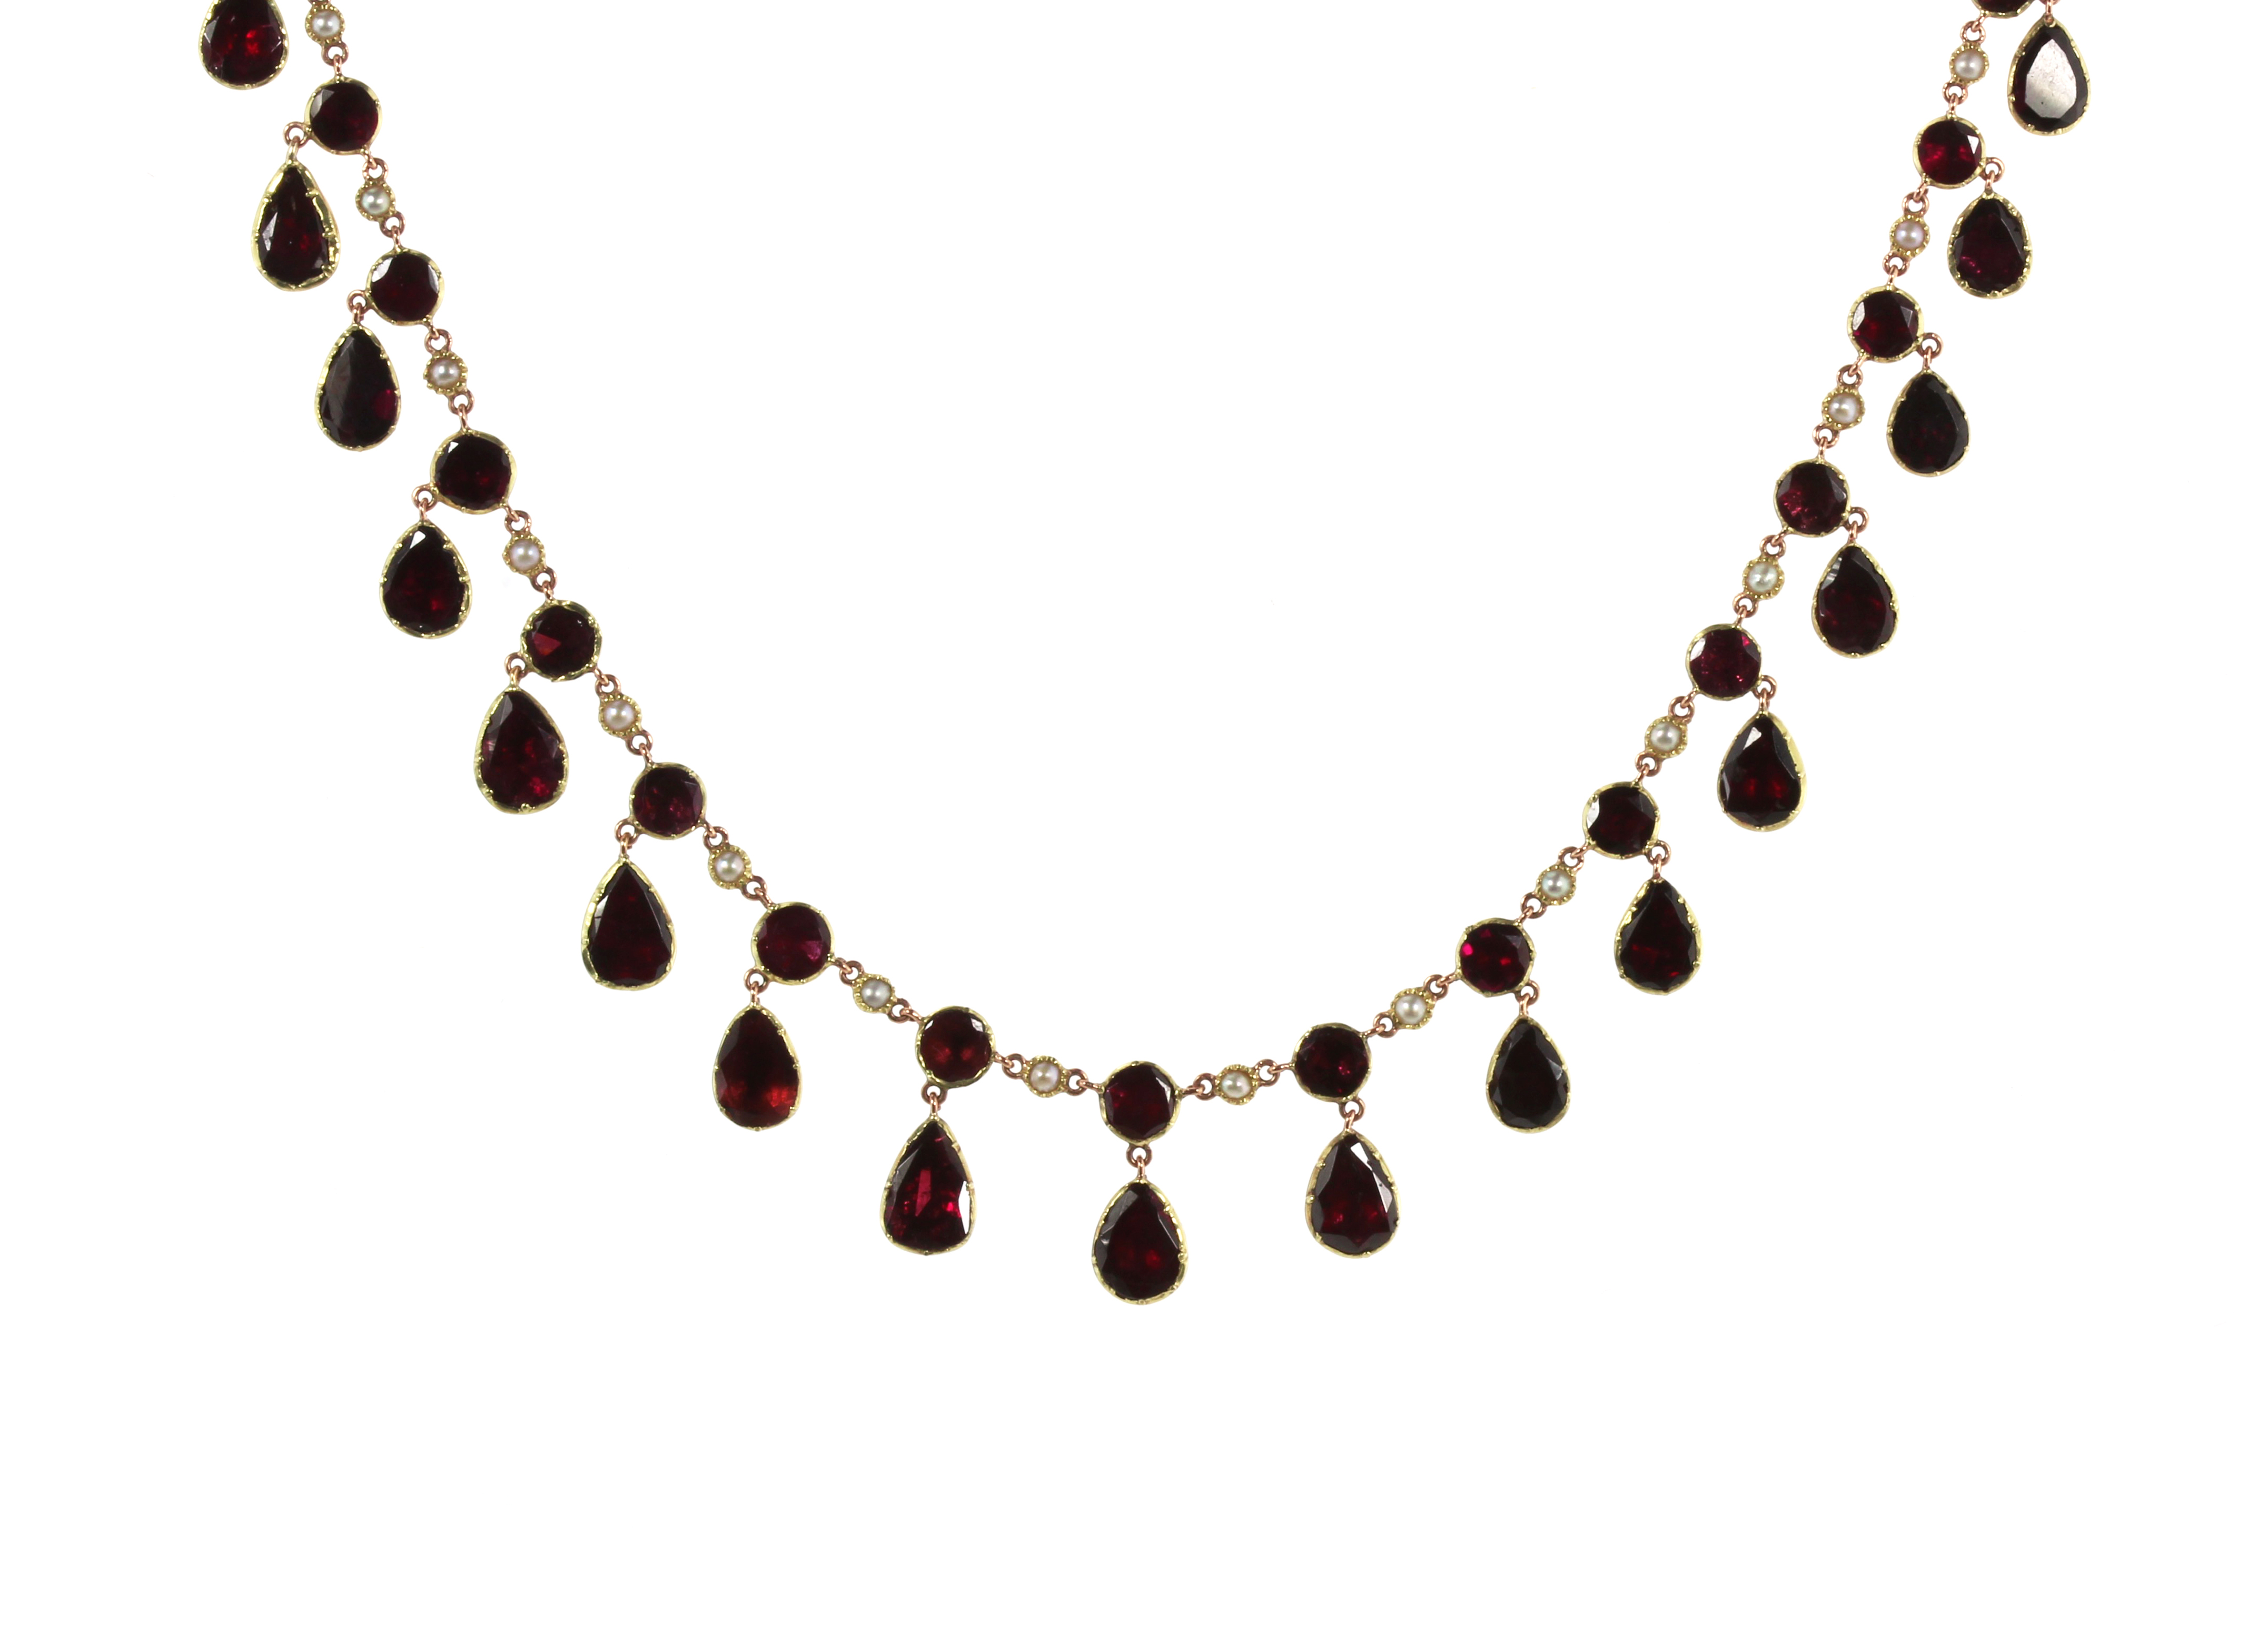 Los 36 - AN GARNET RIVIERA NECKLACE, 19TH CENTURY comprising a single row of alternating flat, round cut